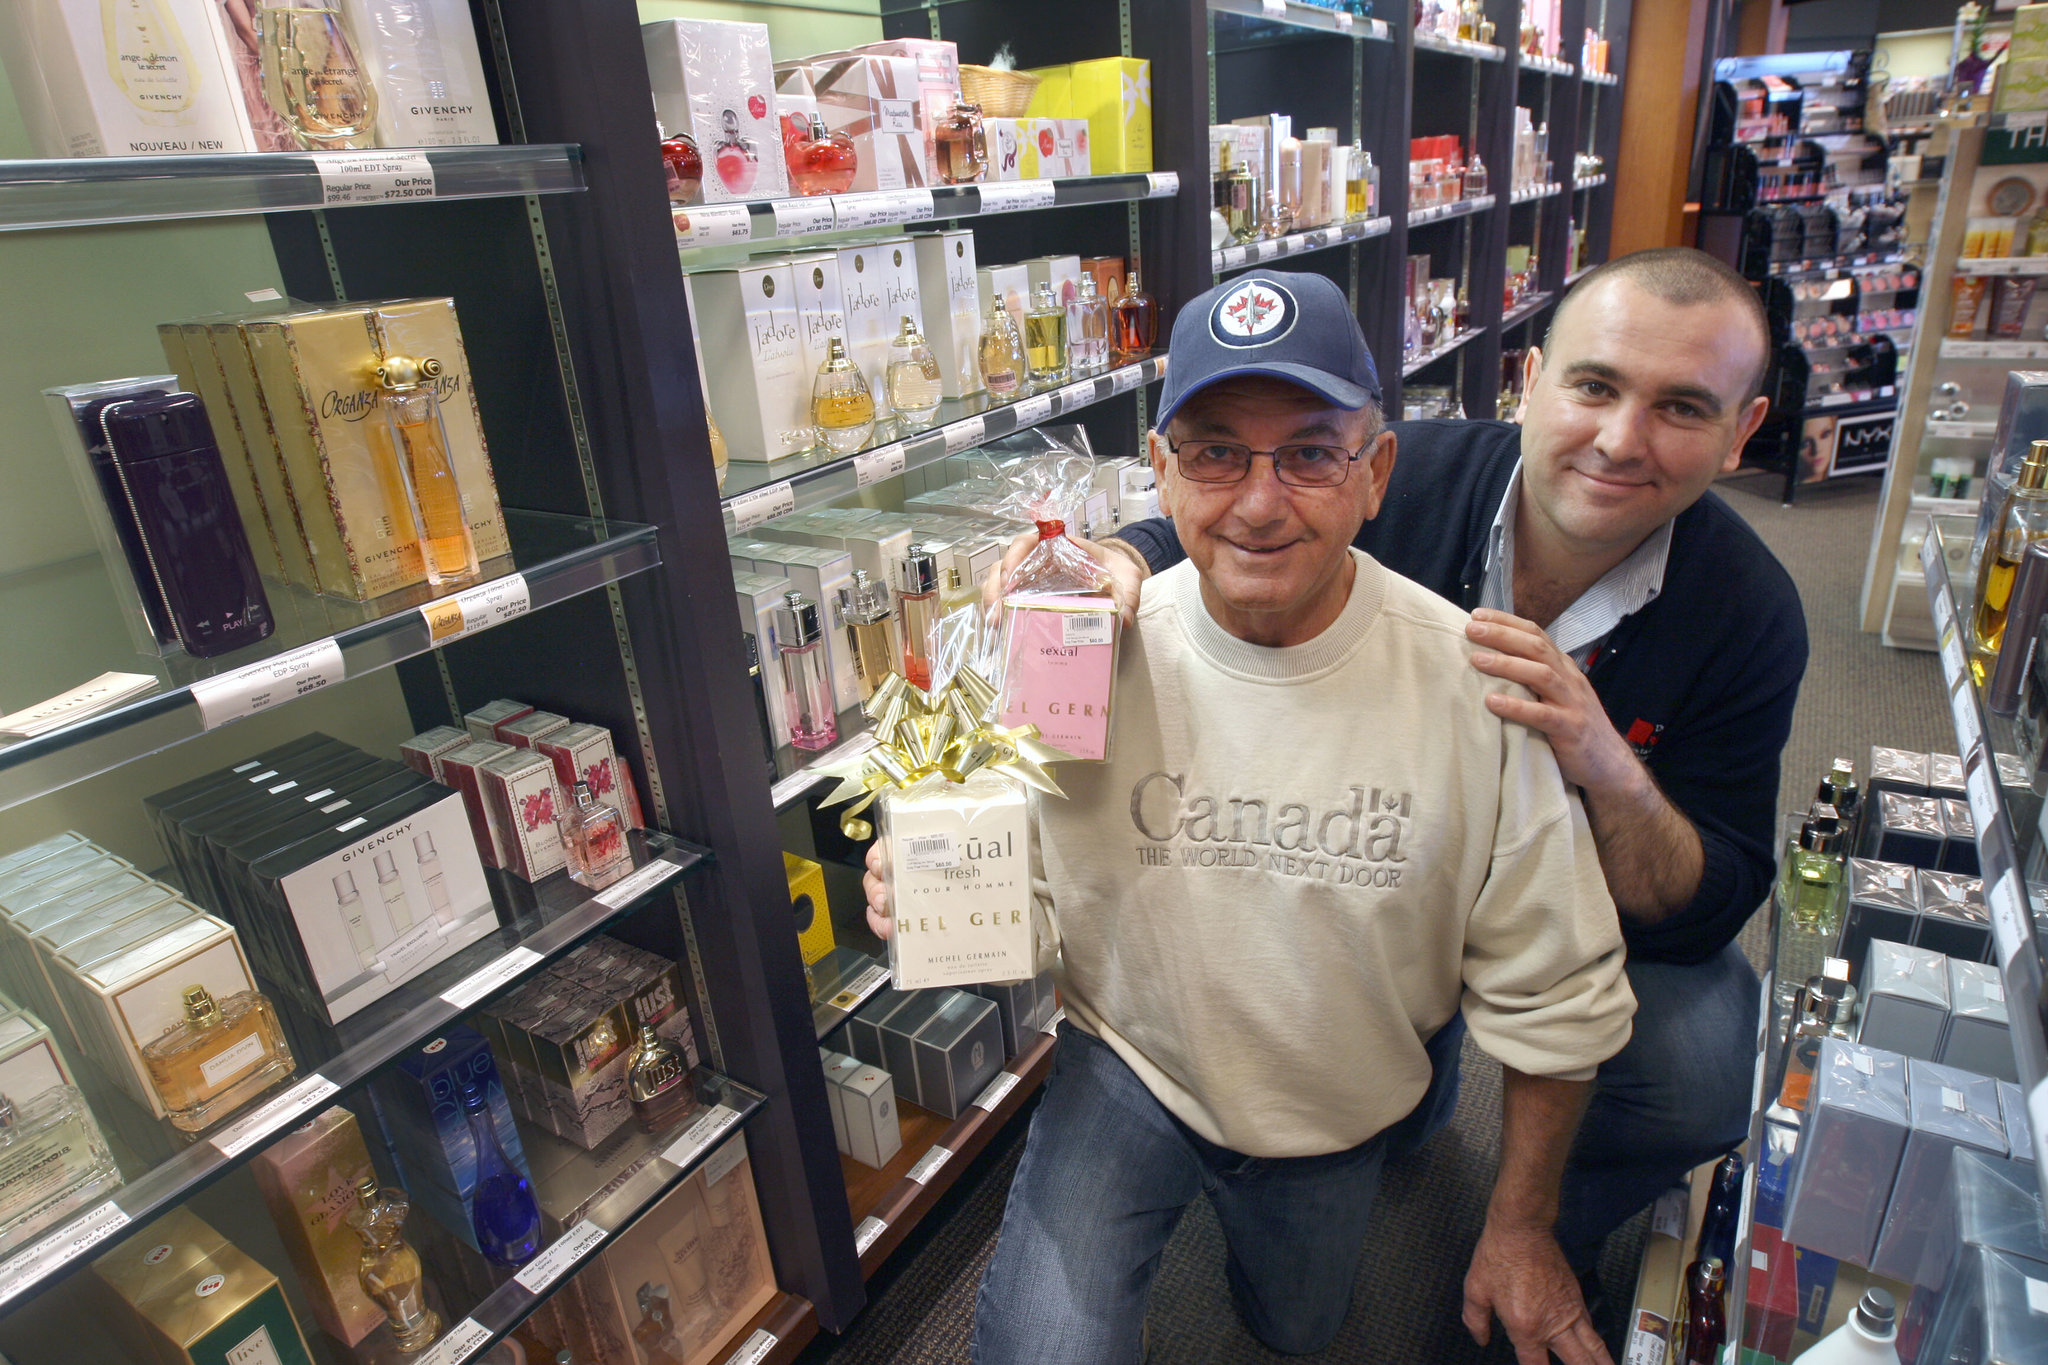 Michael Resch, left, with his son Simon, the manager of the Emerson Duty Free Shop selling gift items, alcohol and smokes. The elder Resch is being recognized by the Canadian Tourism Hall of Fame.